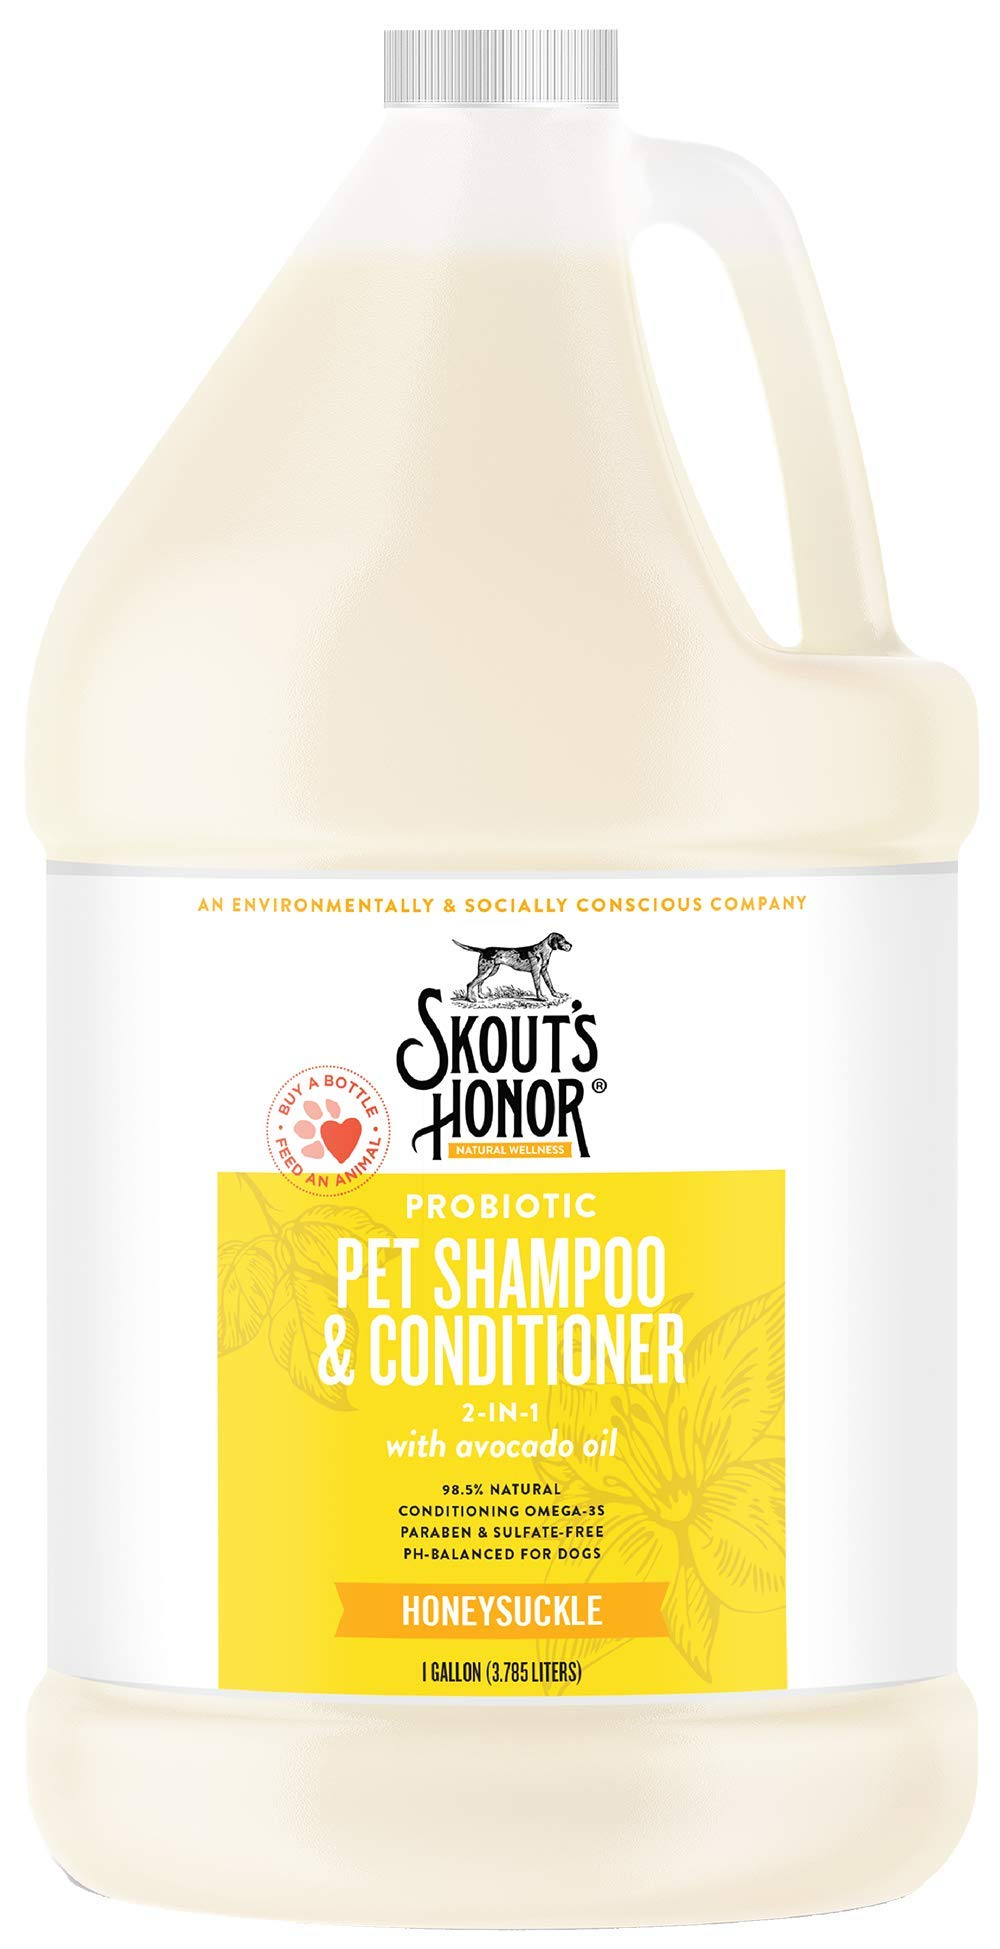 SKOUT'S HONOR Probiotic Pet Shampoo & Conditioner (2-in-1) - 1 Gallon by SKOUT'S HONOR (Image #1)